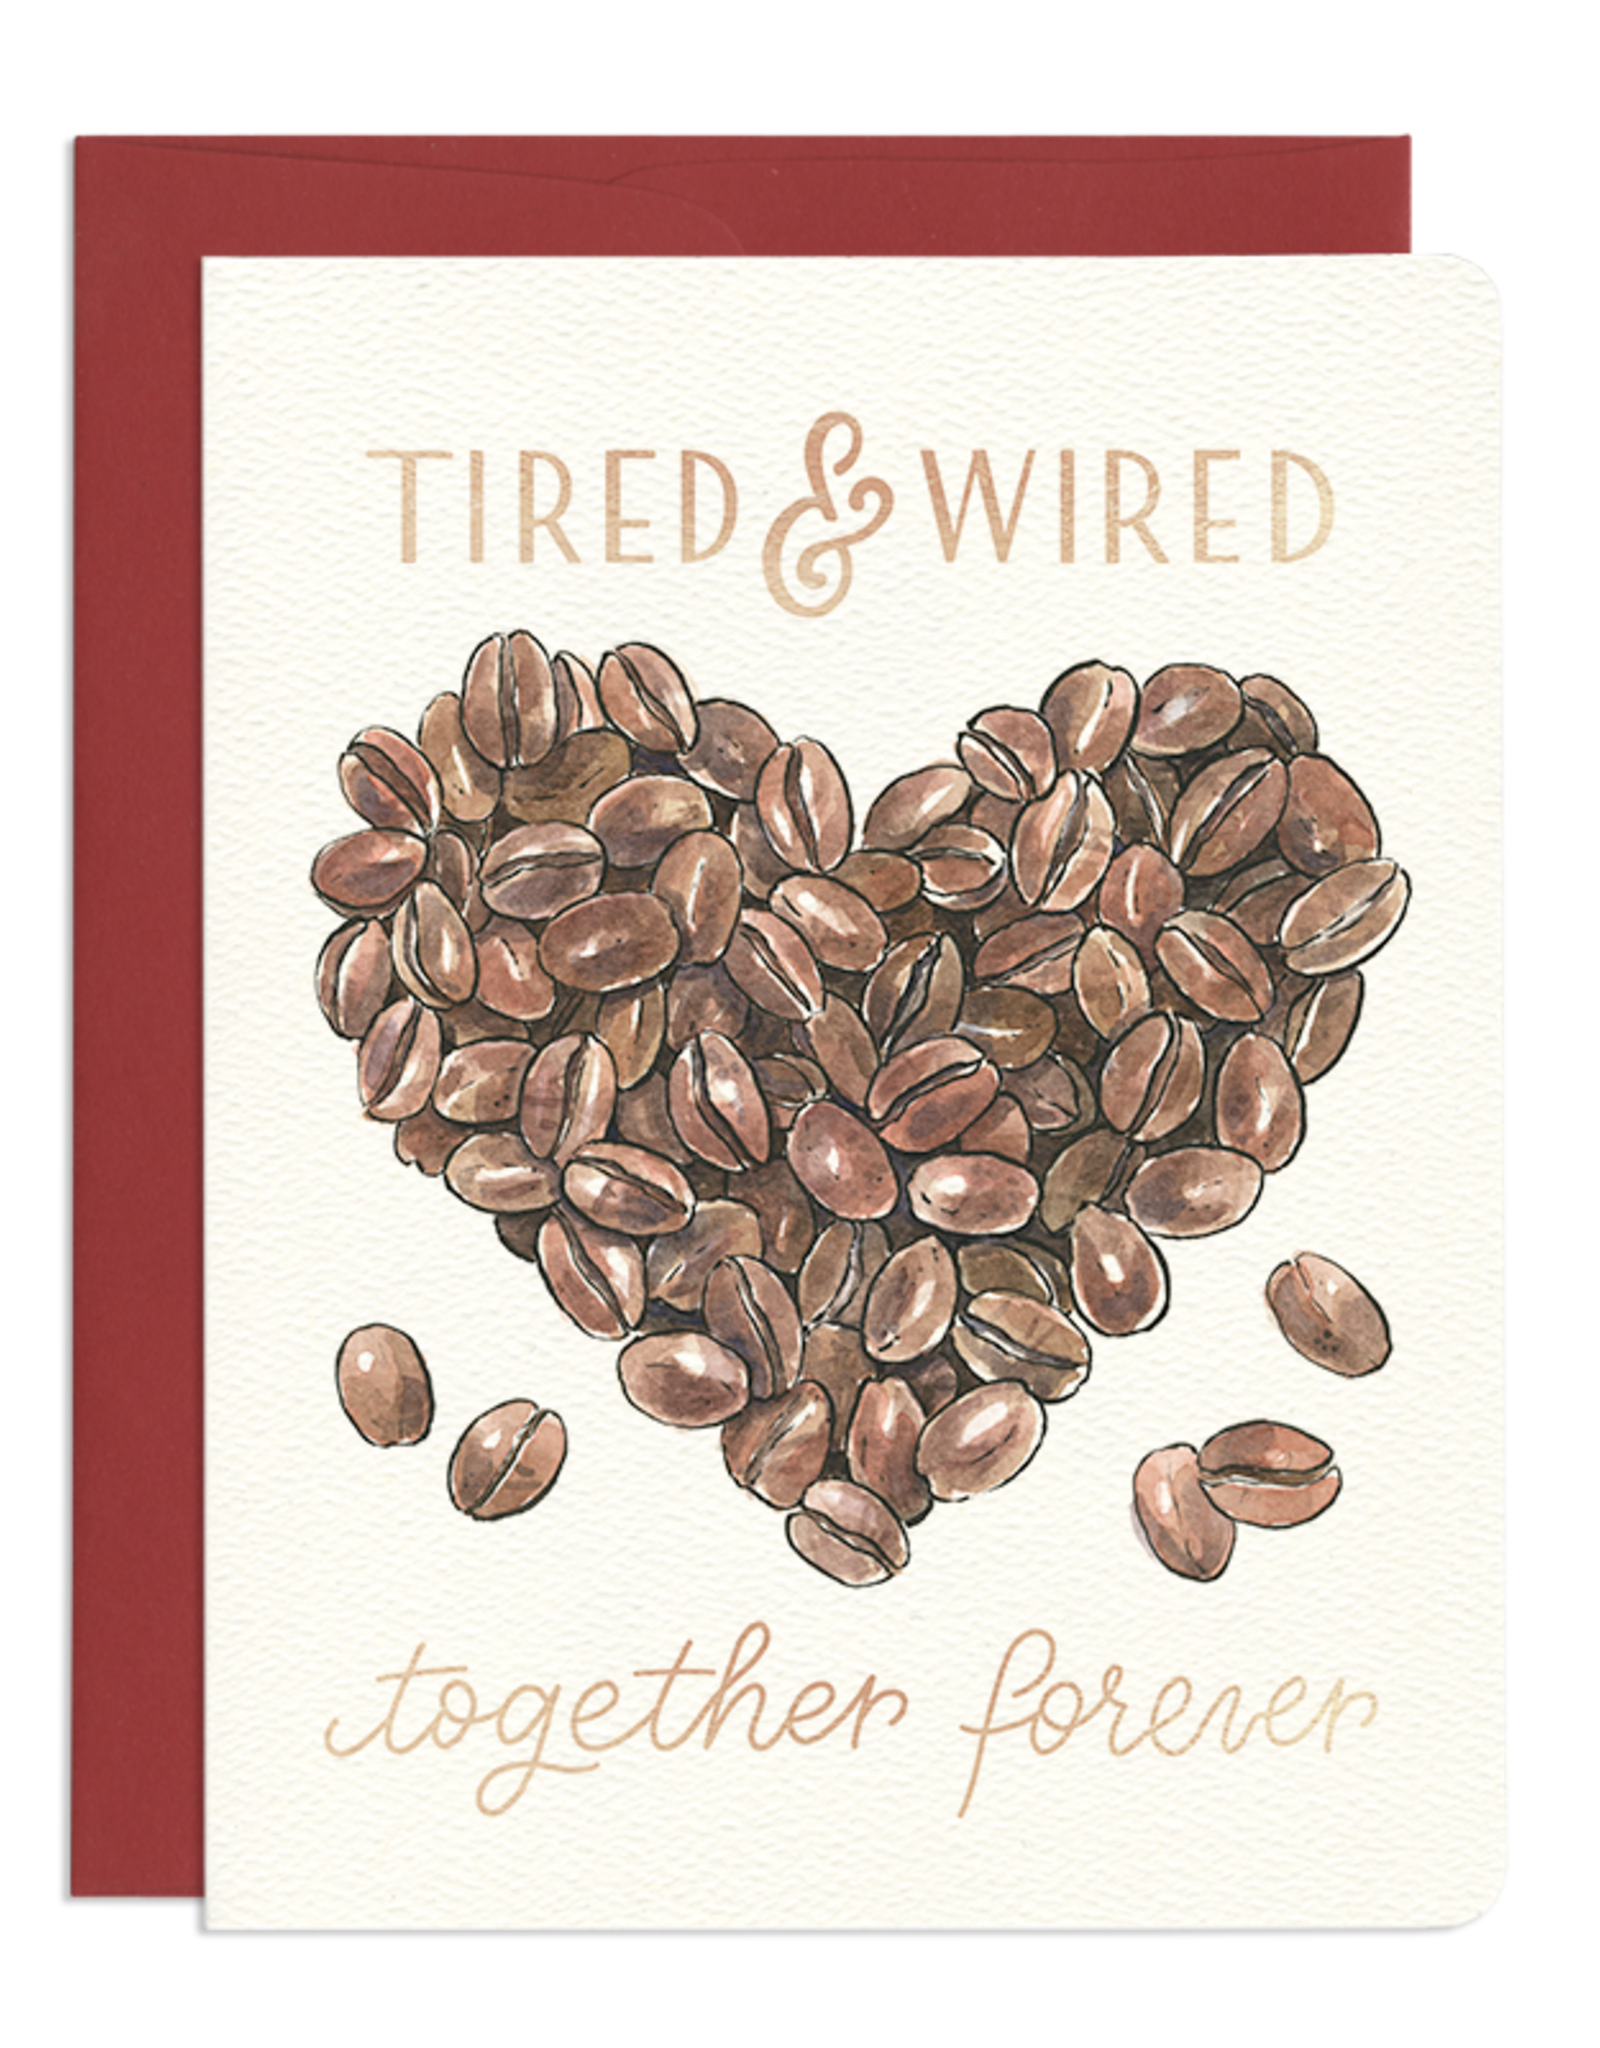 Tired & Wired